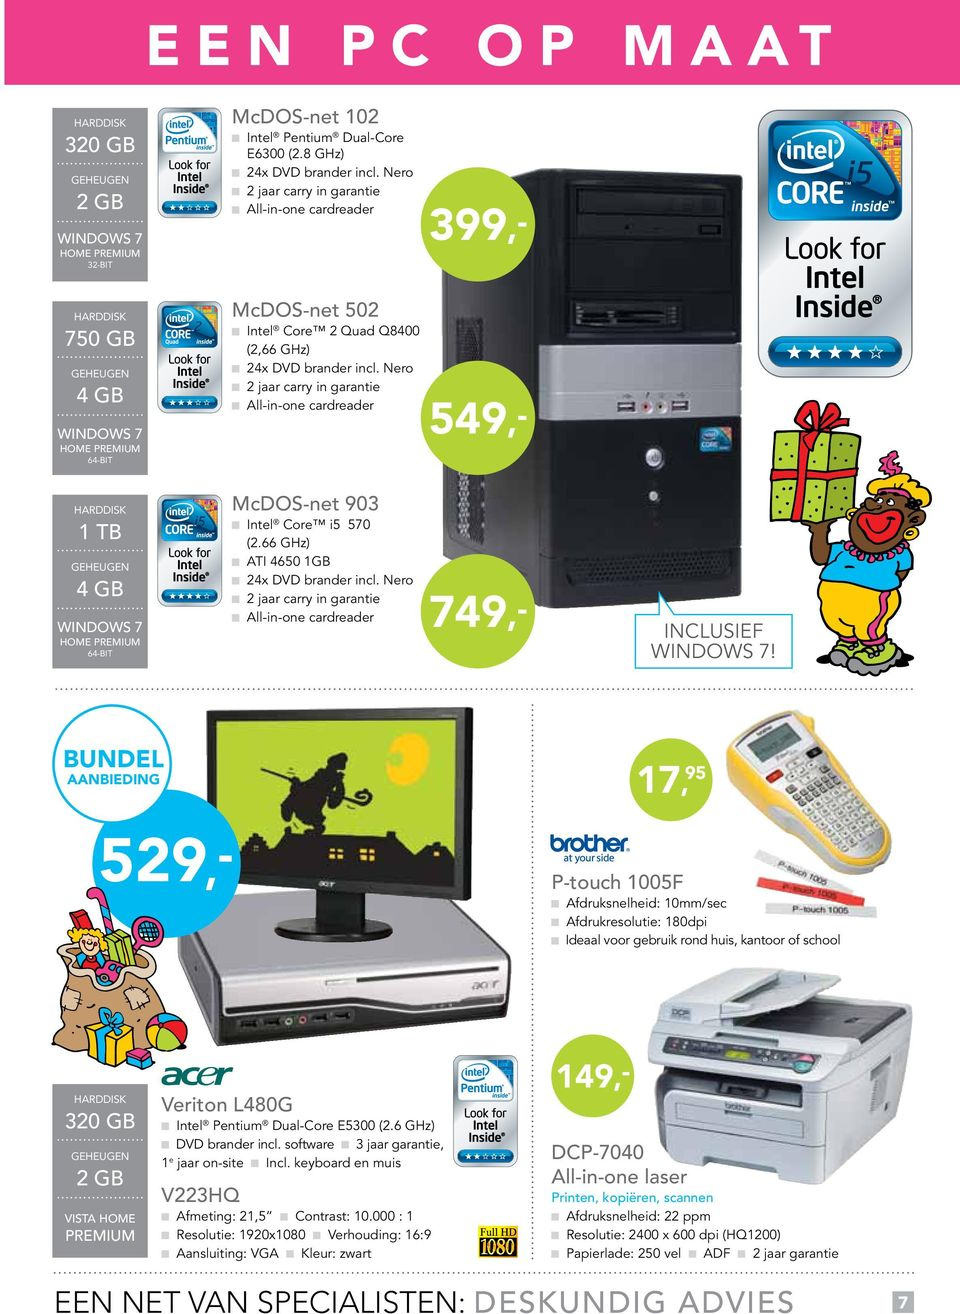 3 Unifying Pavilion DV3 Intel Pentium Mobile Processor T4300 (2,1 GHz) NVIDIA GeForce Go 105M, 512MB 1 jaar pick up and return HDMI 5 -in-one cardreader Expresscard slot Intel Core 2 Quad Q8400 (2,66